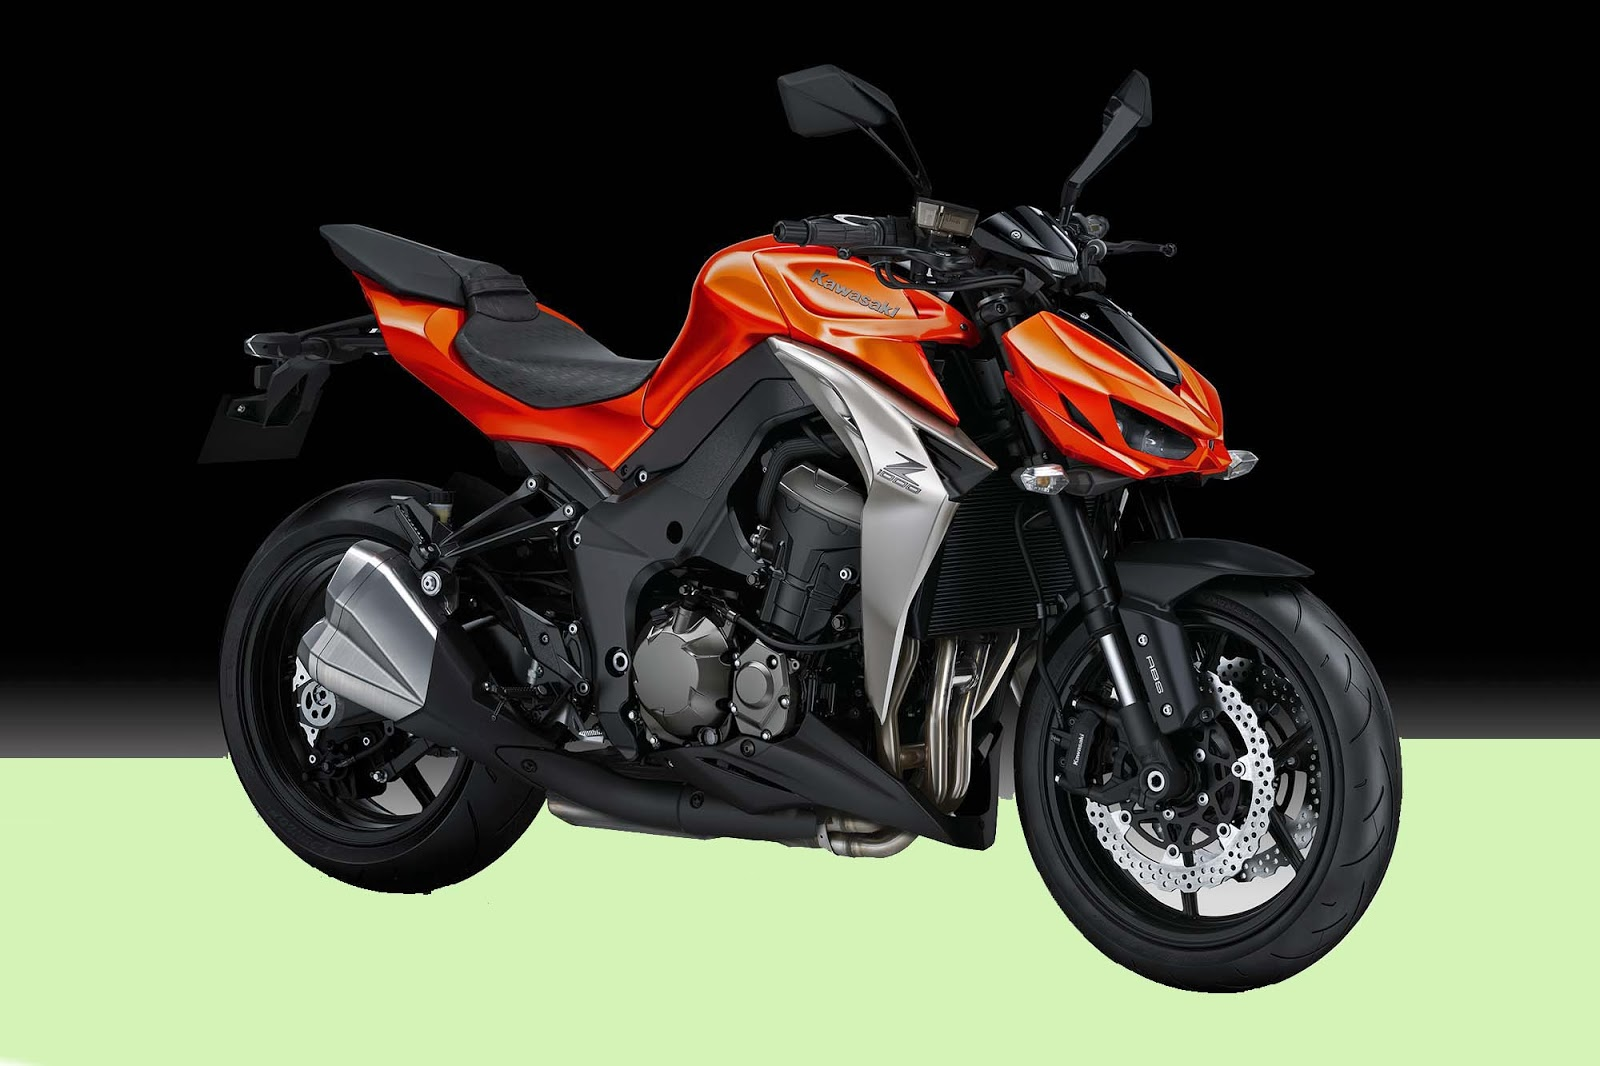 Kawasaki Is Ready To Begin Sales Of Its New Superbike The Z1000 In India 2014 Was Exhibited World At Recent EICMA 2013 Show